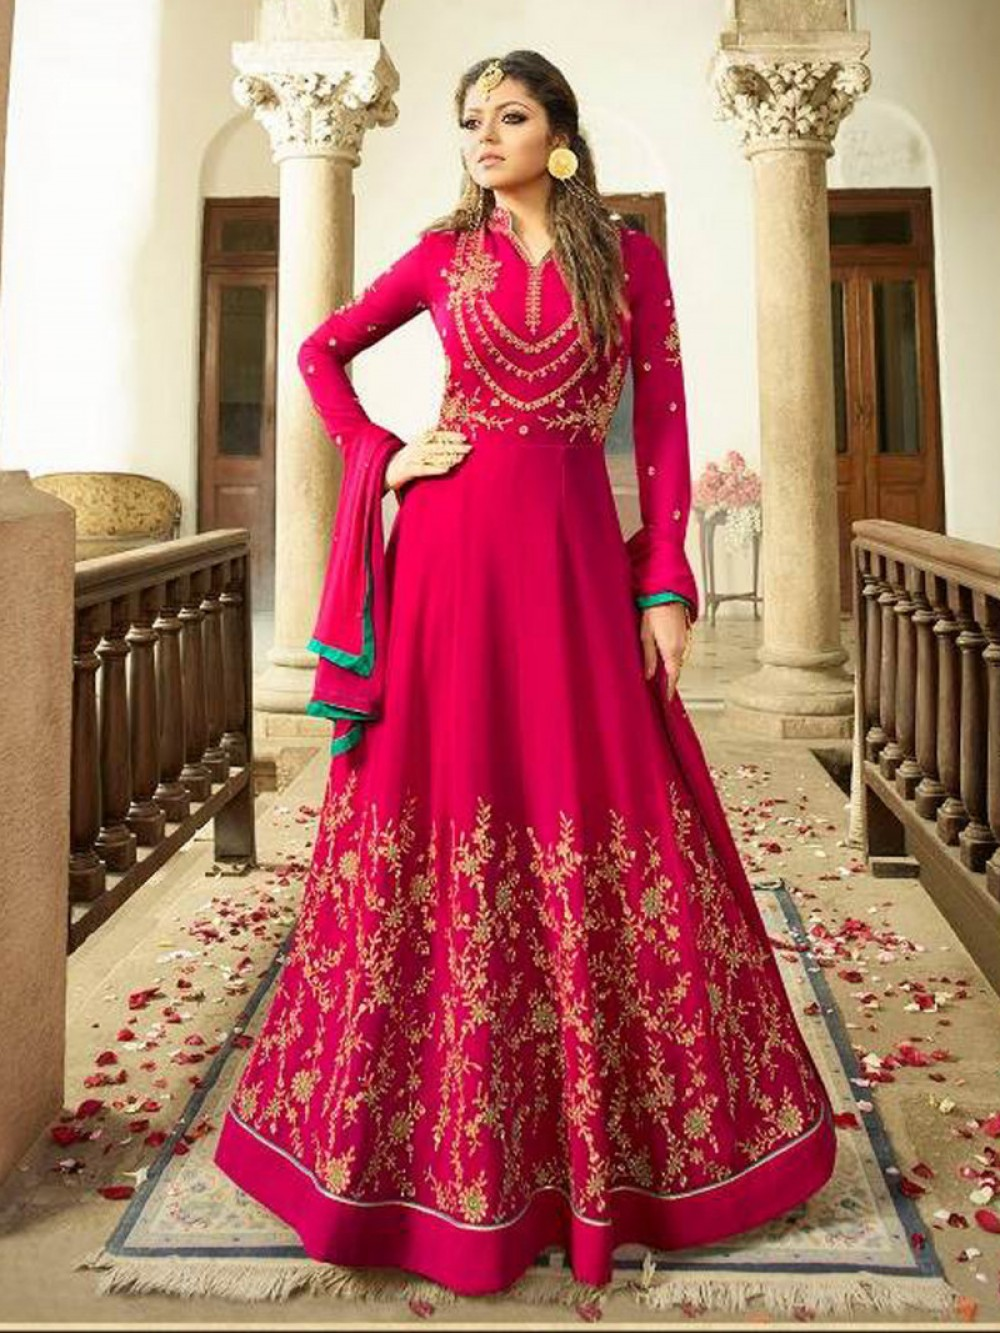 Drashti Dhami Wear Pink Color Faux Georgette Salwar Suit